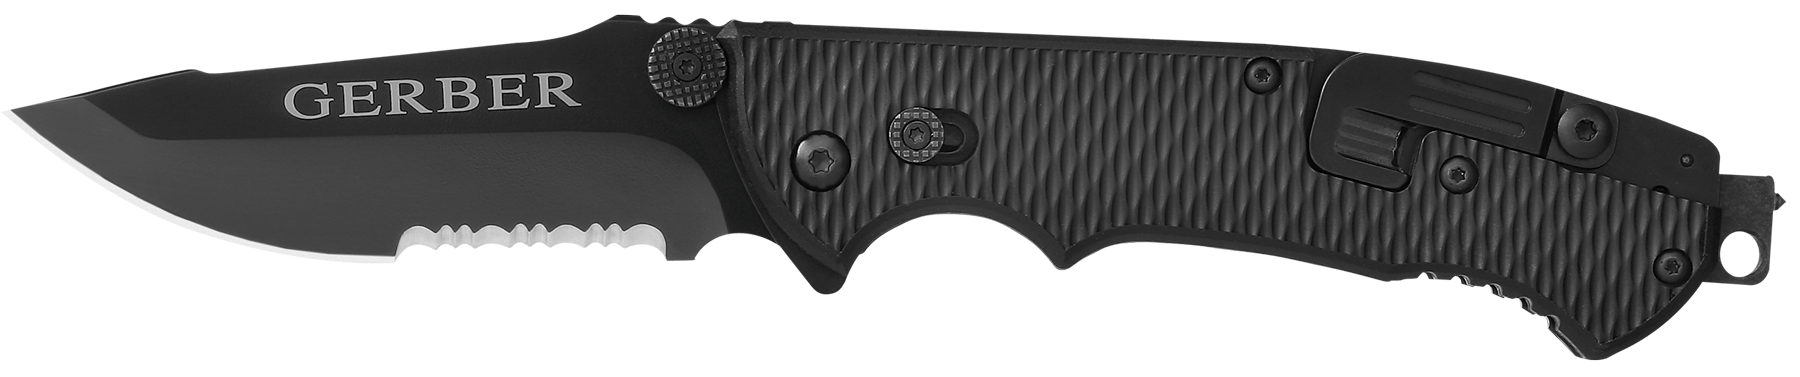 Gerber 01870 Hinderer Folder 440A Stainless Fine/Serrated Blade Black